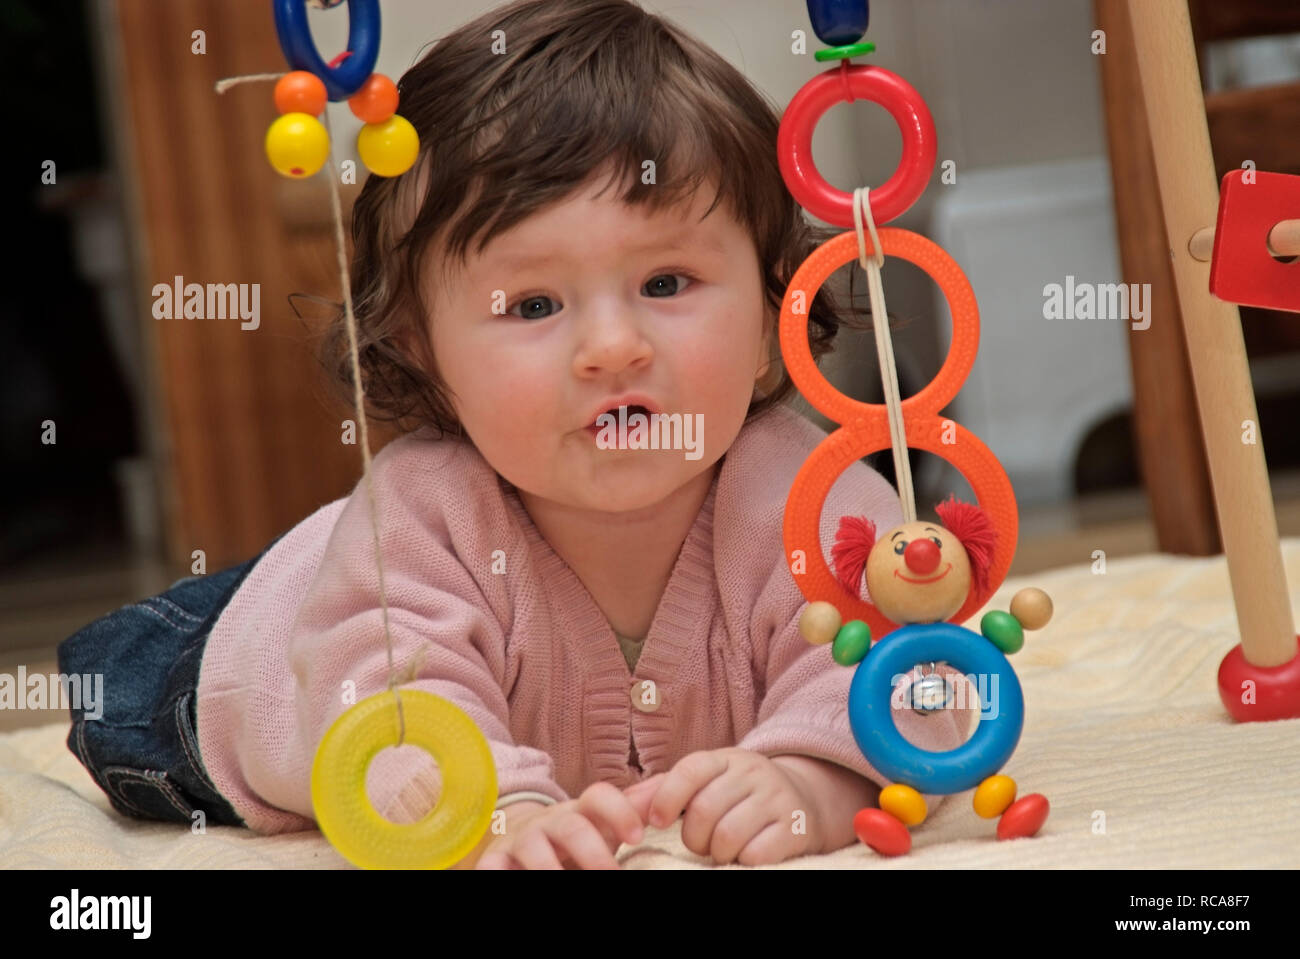 Baby im Zimmer liegt auf dem Boden, Spielzeug | baby lying in a room on the floor, playing with toys Stock Photo